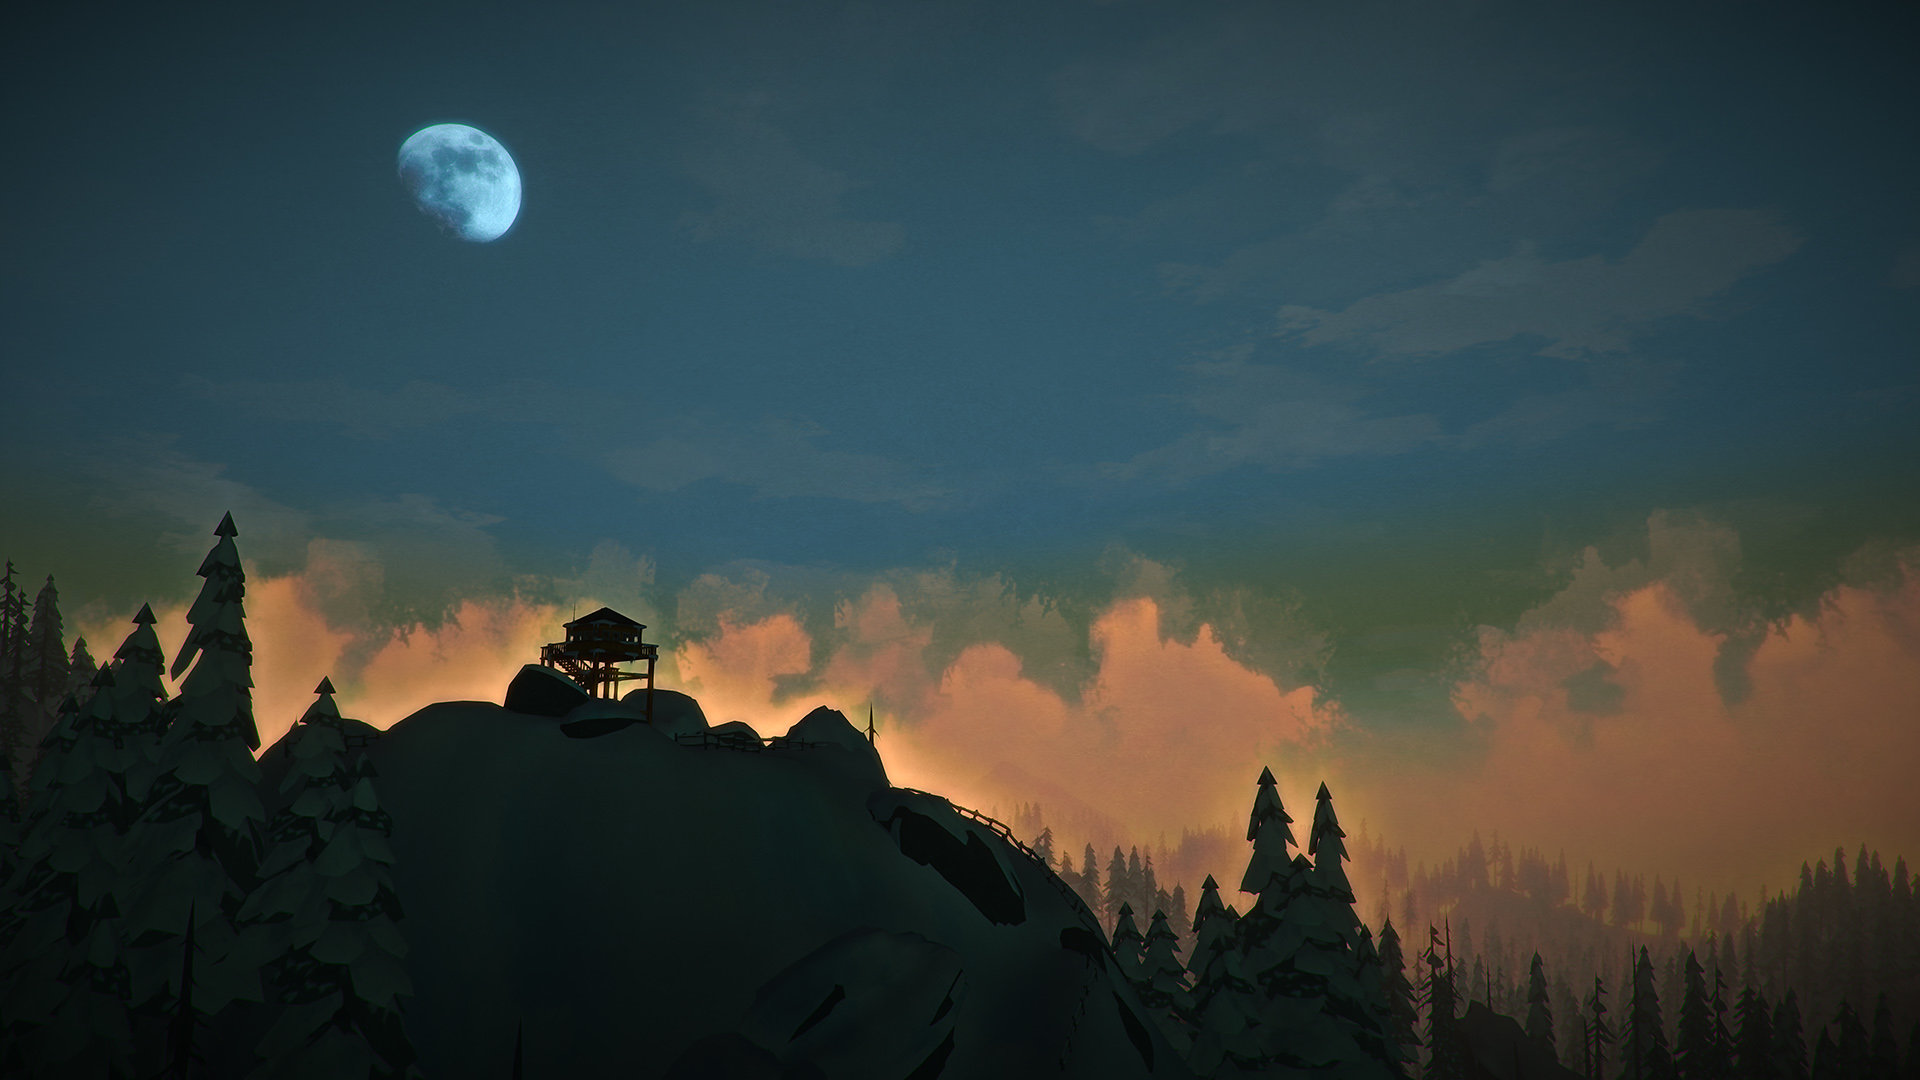 The Long Dark Wallpapers 1920x1080 Full Hd 1080p Desktop